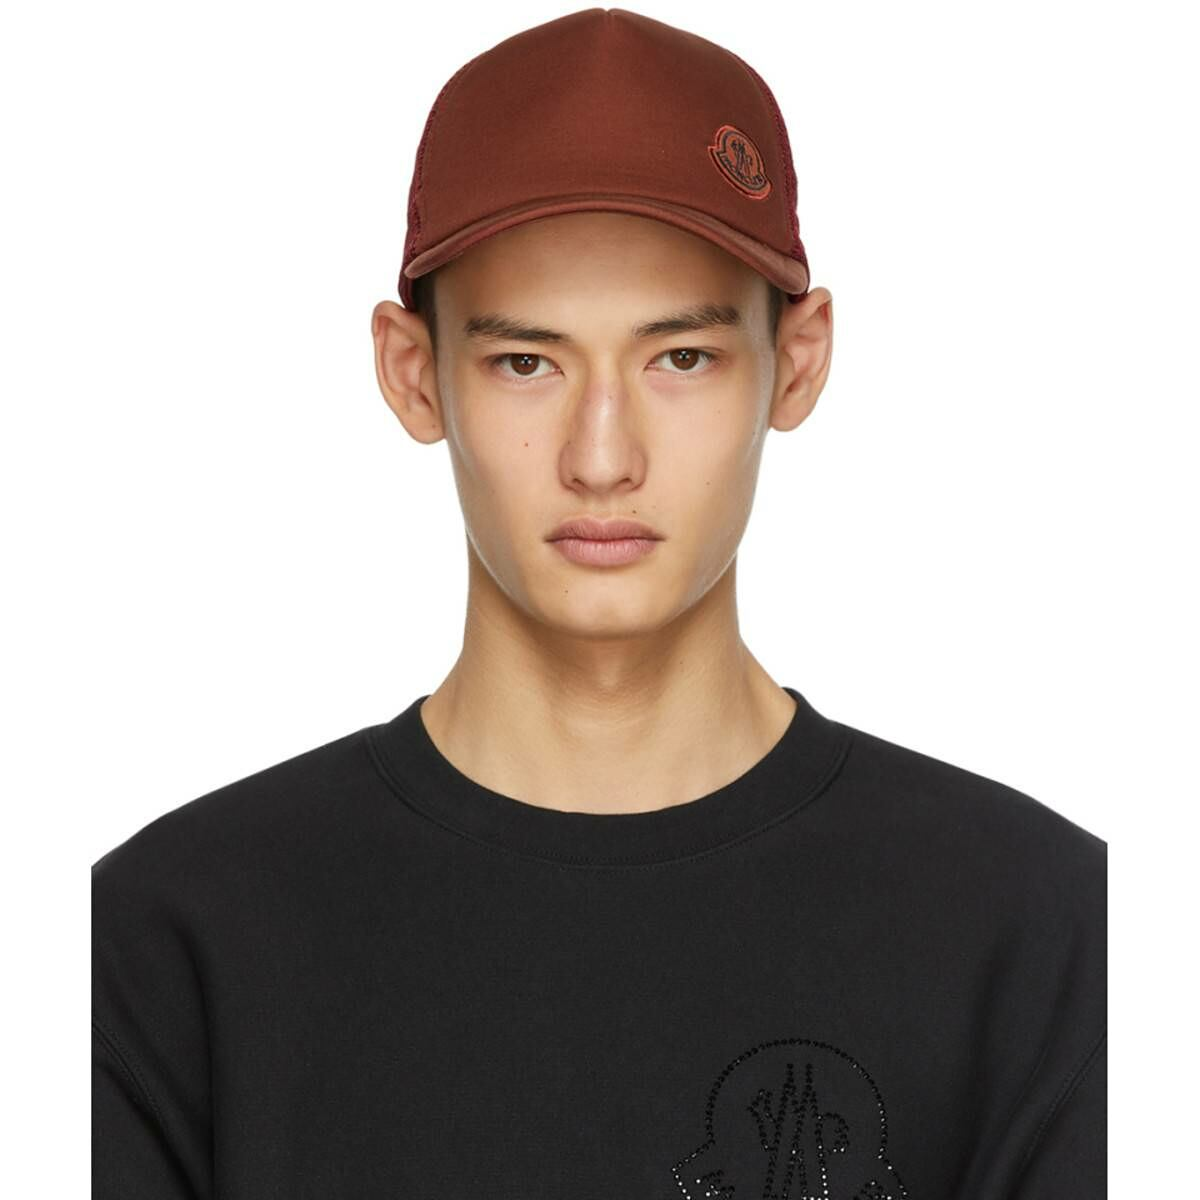 Moncler Genius 2 Moncler 1952 Brown Baseball Cap Ssense USA MEN Men ACCESSORIES Mens CAPS